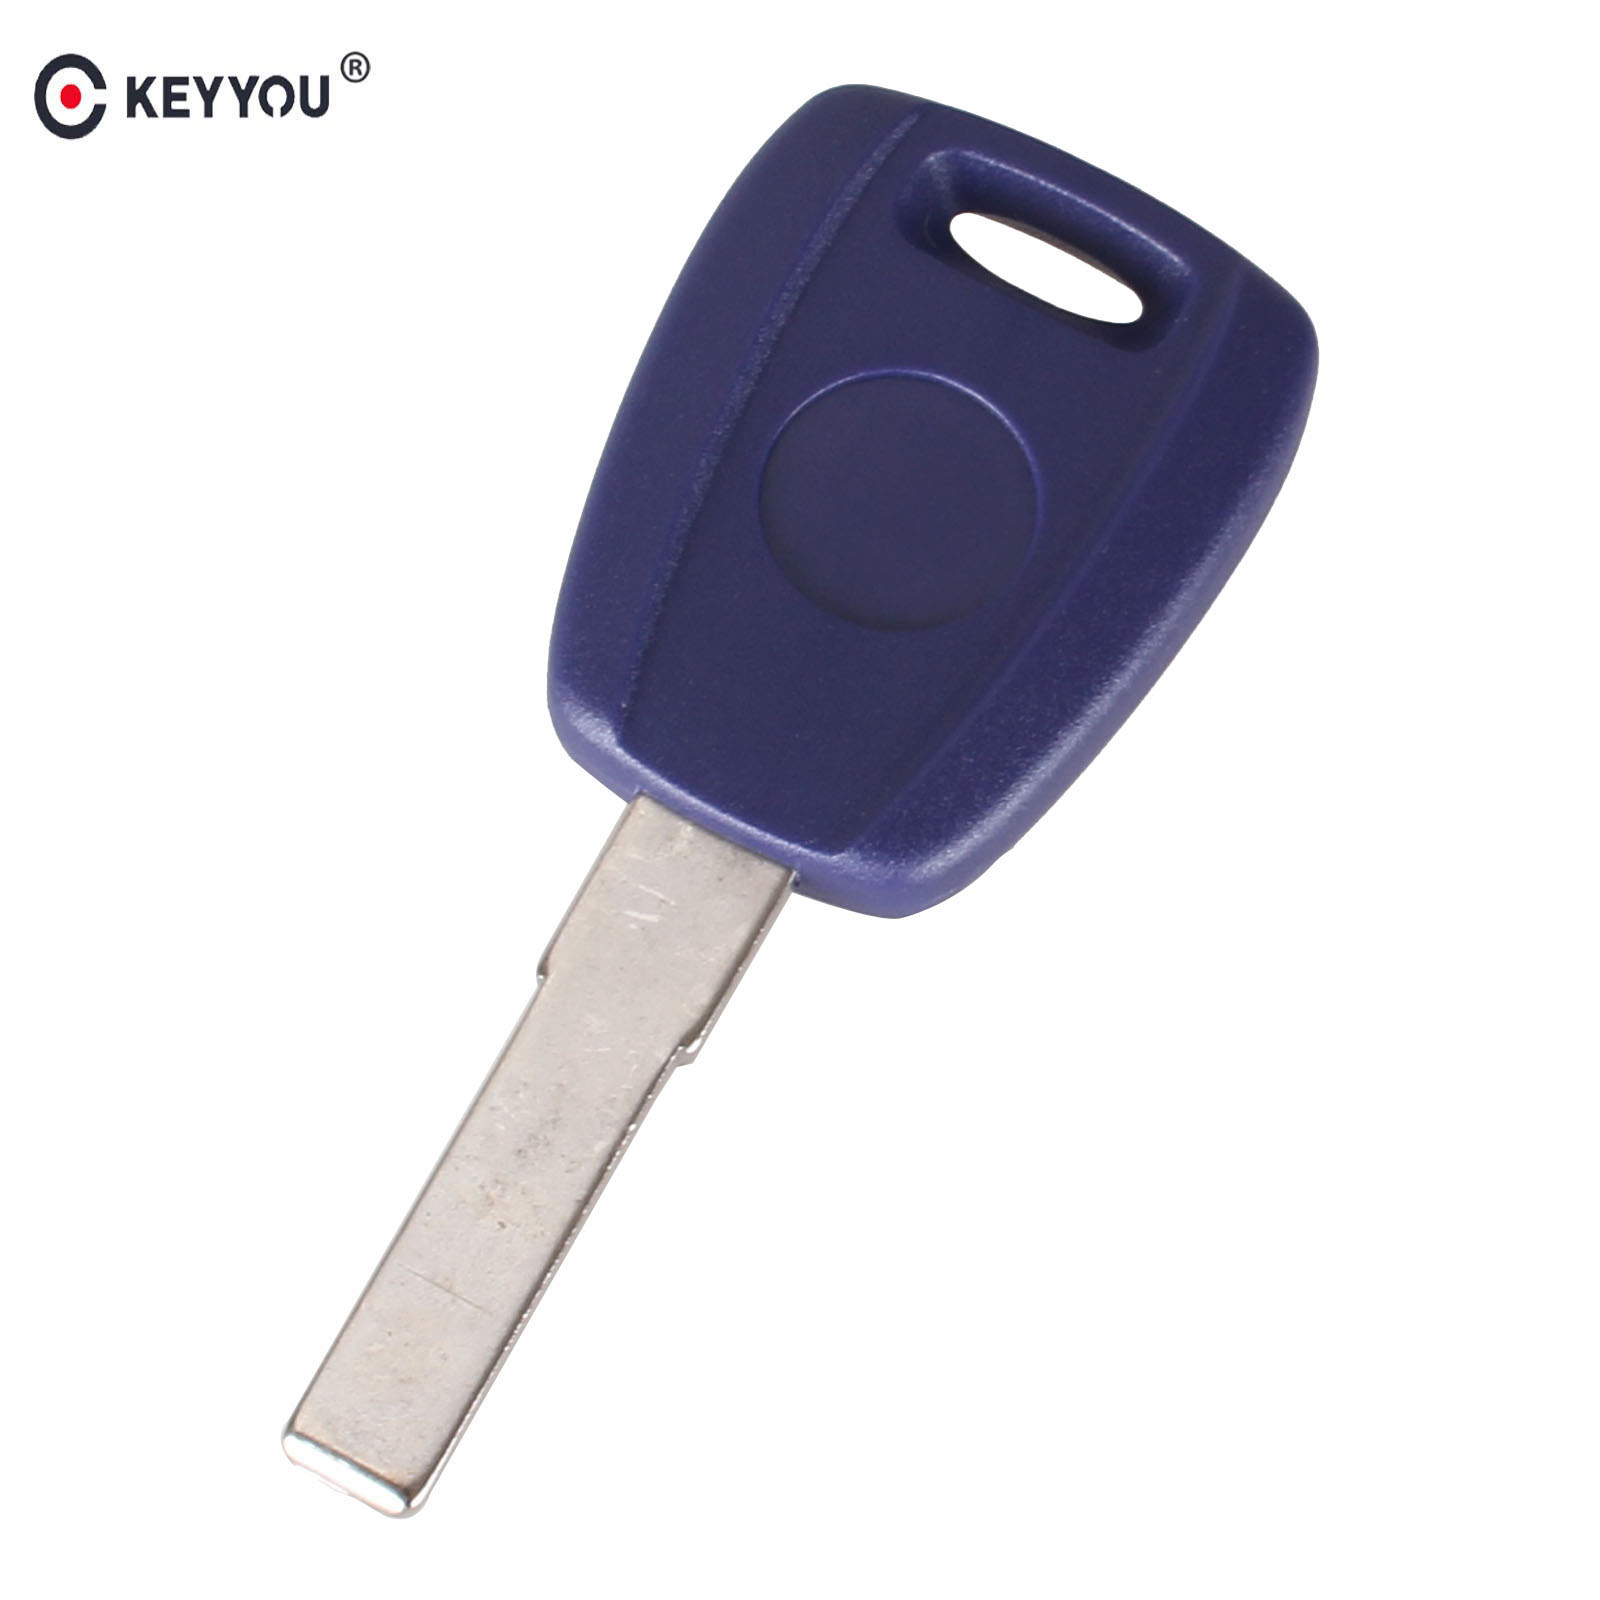 KEYYOU For Fiat Key Shell SIP22 Blue Blank Shell For Fiat 500 Ducato Transponder Key Uncut Blade free shipping transponder key shell for tpx gt10 blade for alfa 10 piece lot